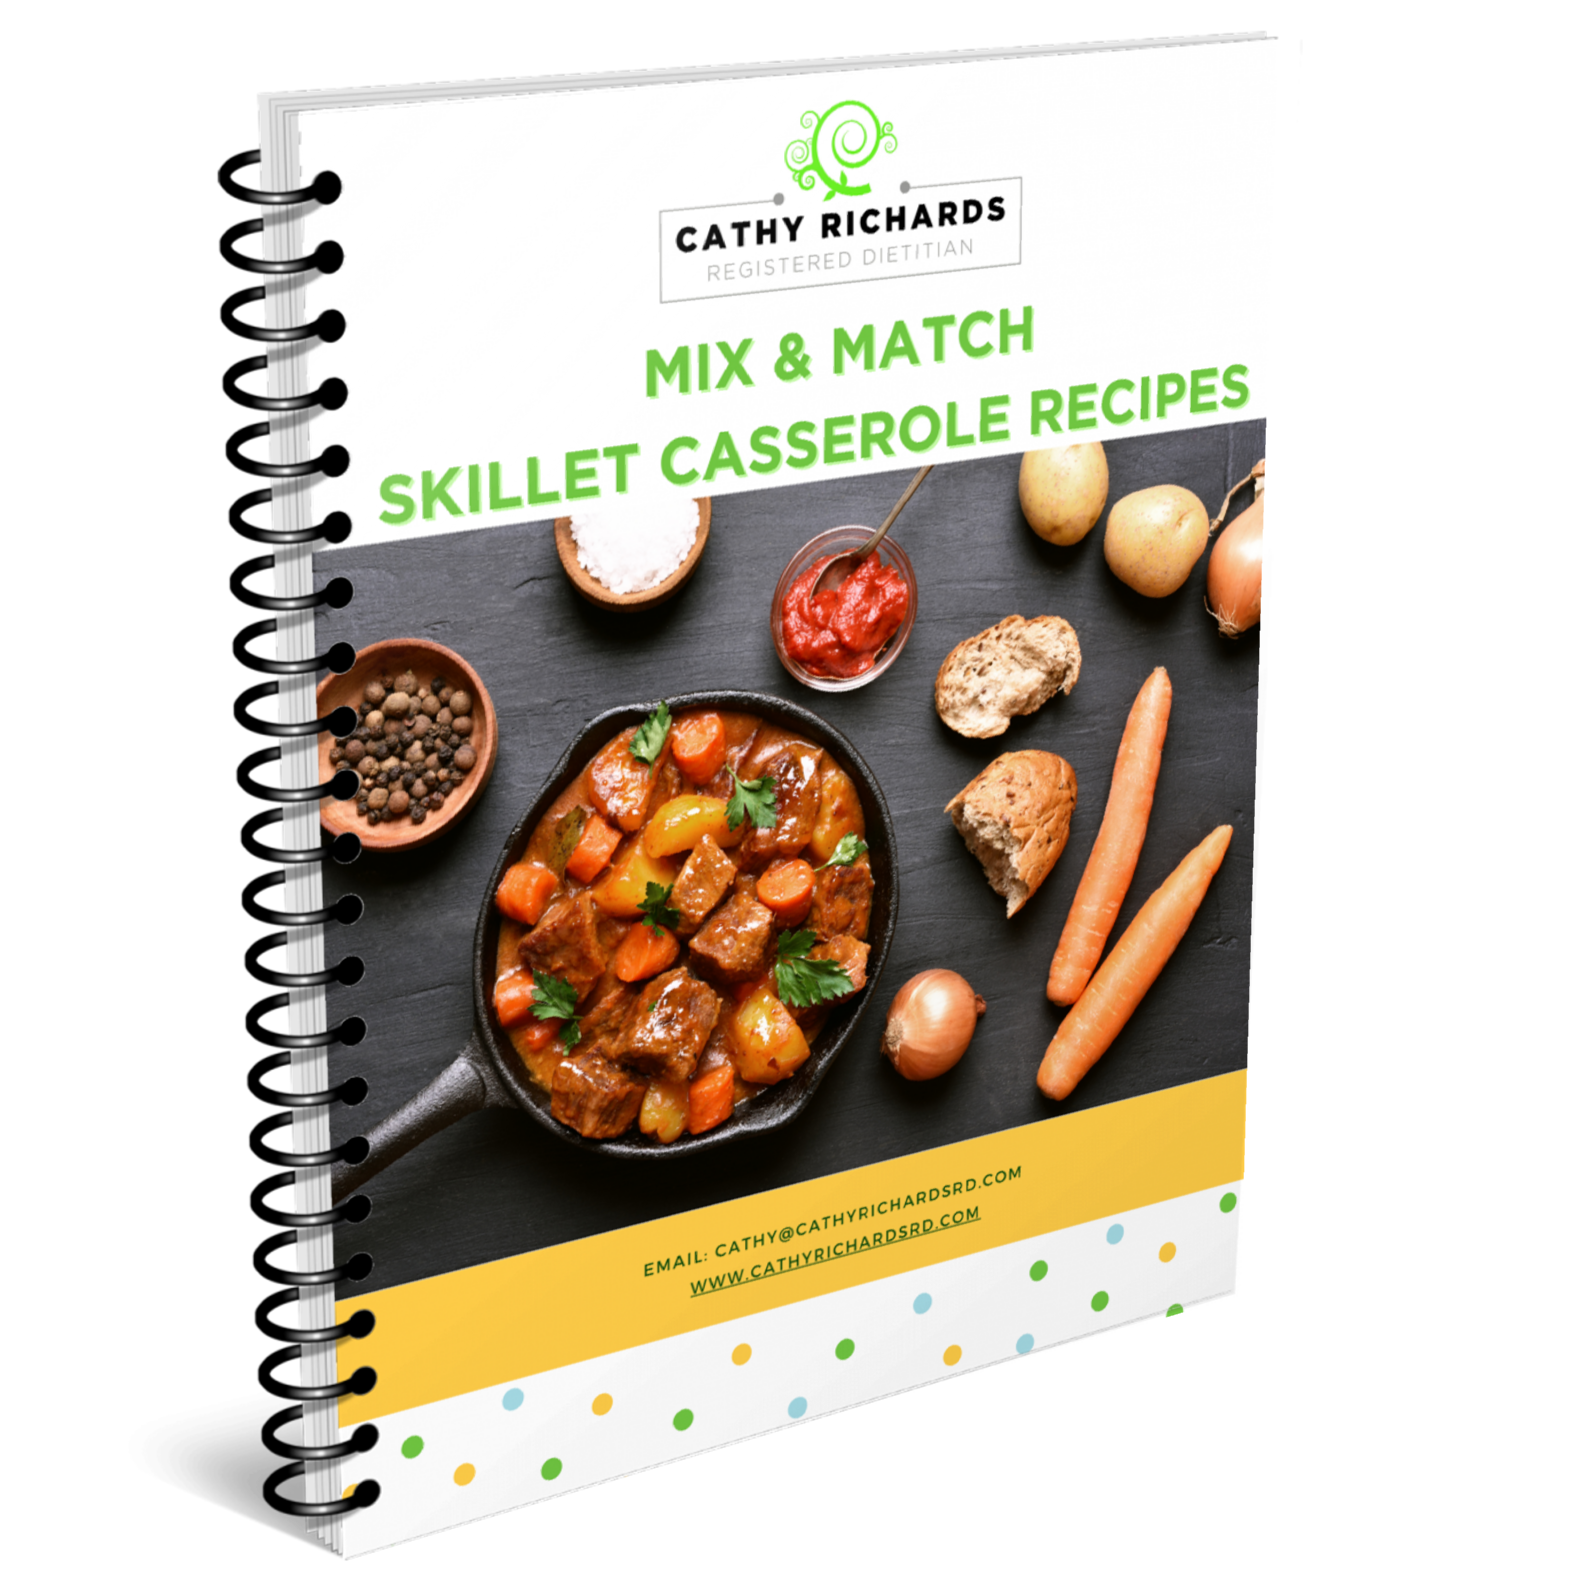 Mix & Match Skillet Casserole Recipes Cathyrichardsrd.com